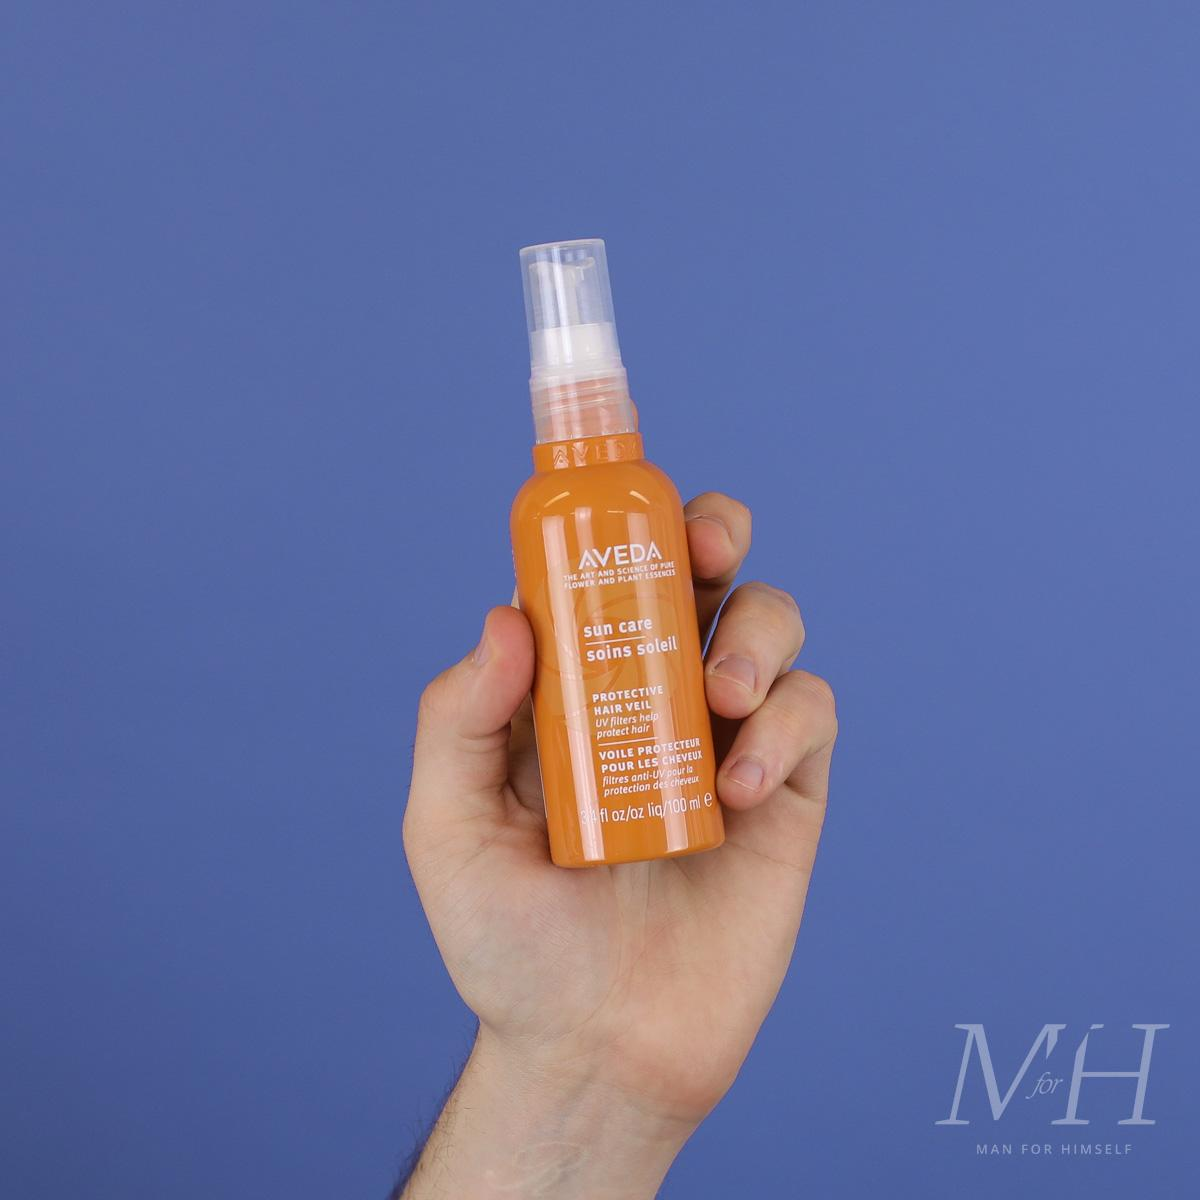 aveda-sun-care-protective-hair-veil-product-review-man-for-himself